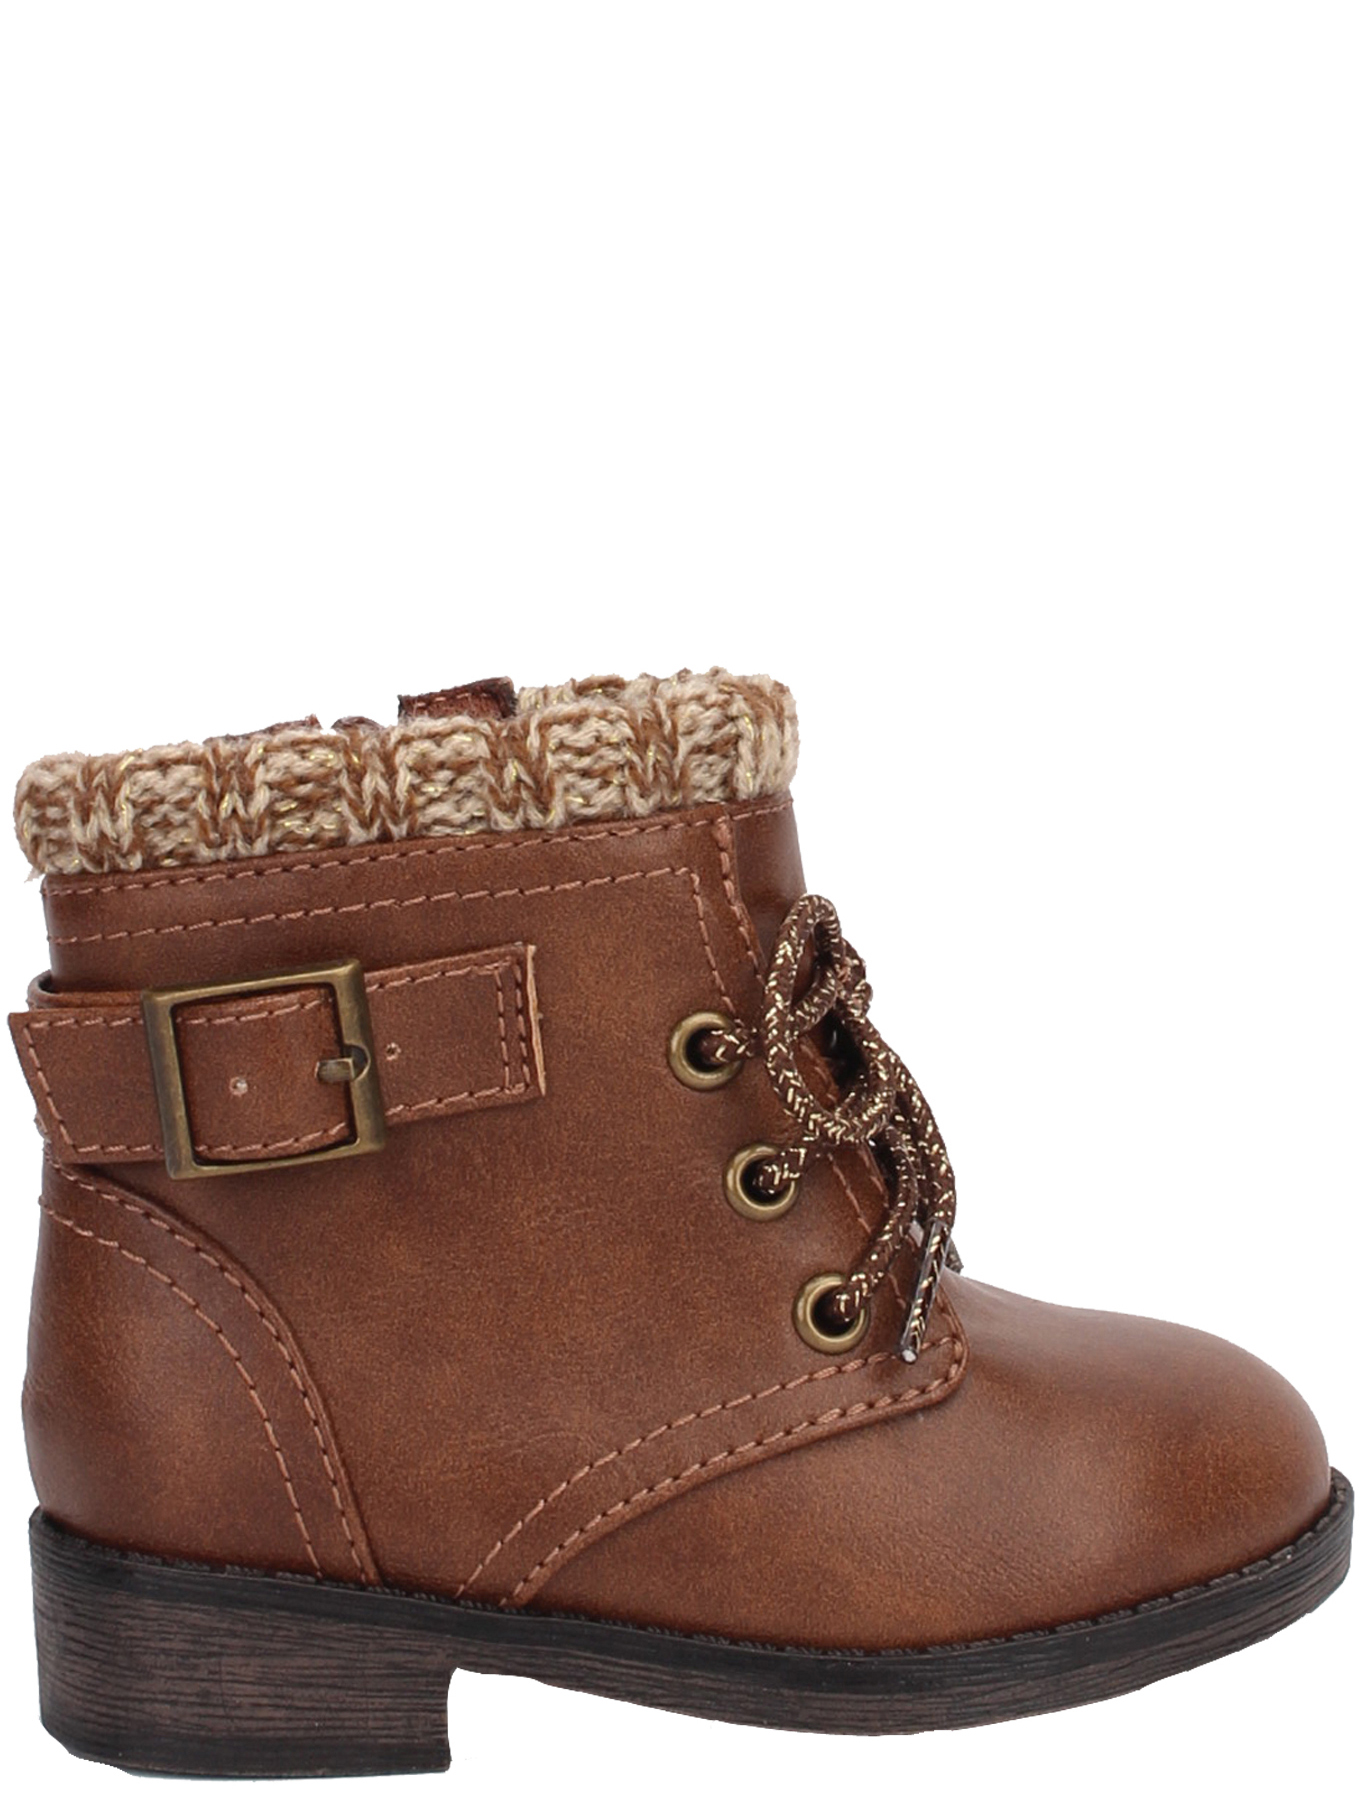 Wonder Nation Girls Brown Booties with Heart NEW